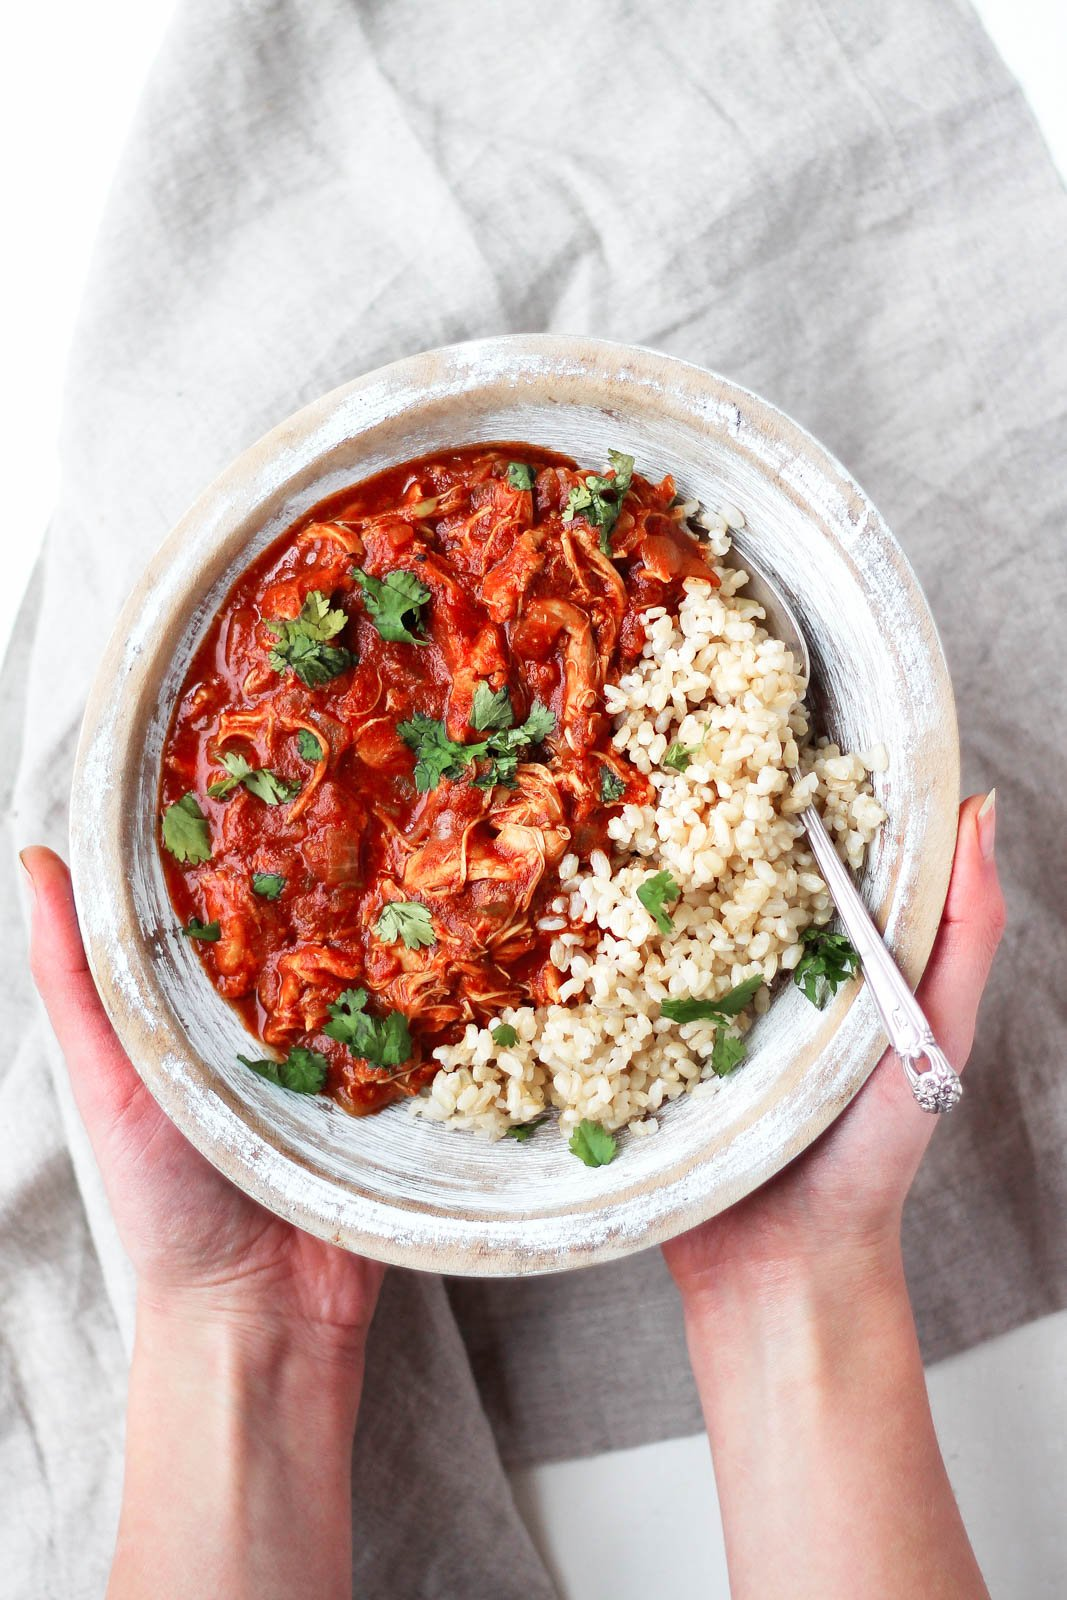 hands holding Slow Cooker Chicken Tikka Masala in a bowl with rice